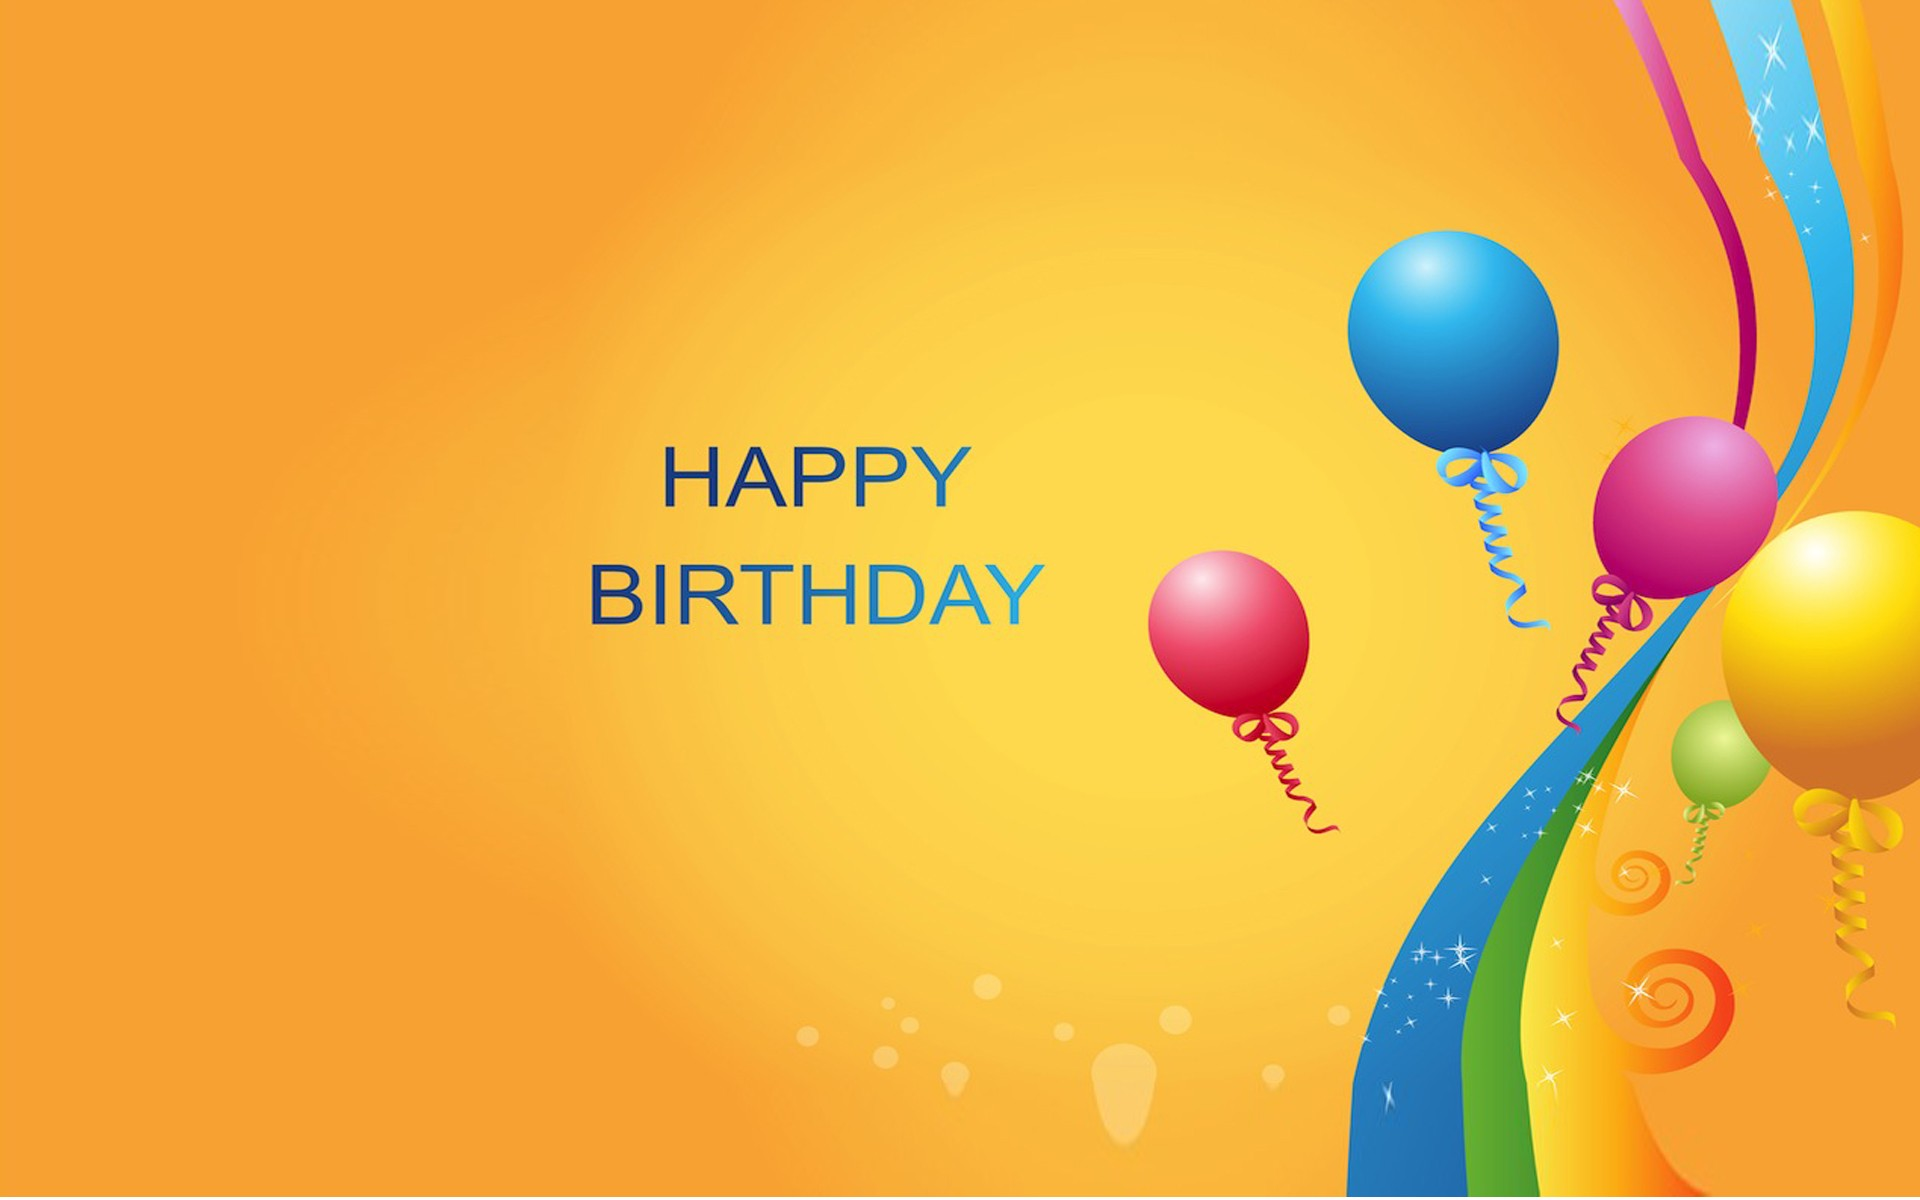 Happy Birthday Background Powerpoint Backgrounds For Free Powerpoint Templates